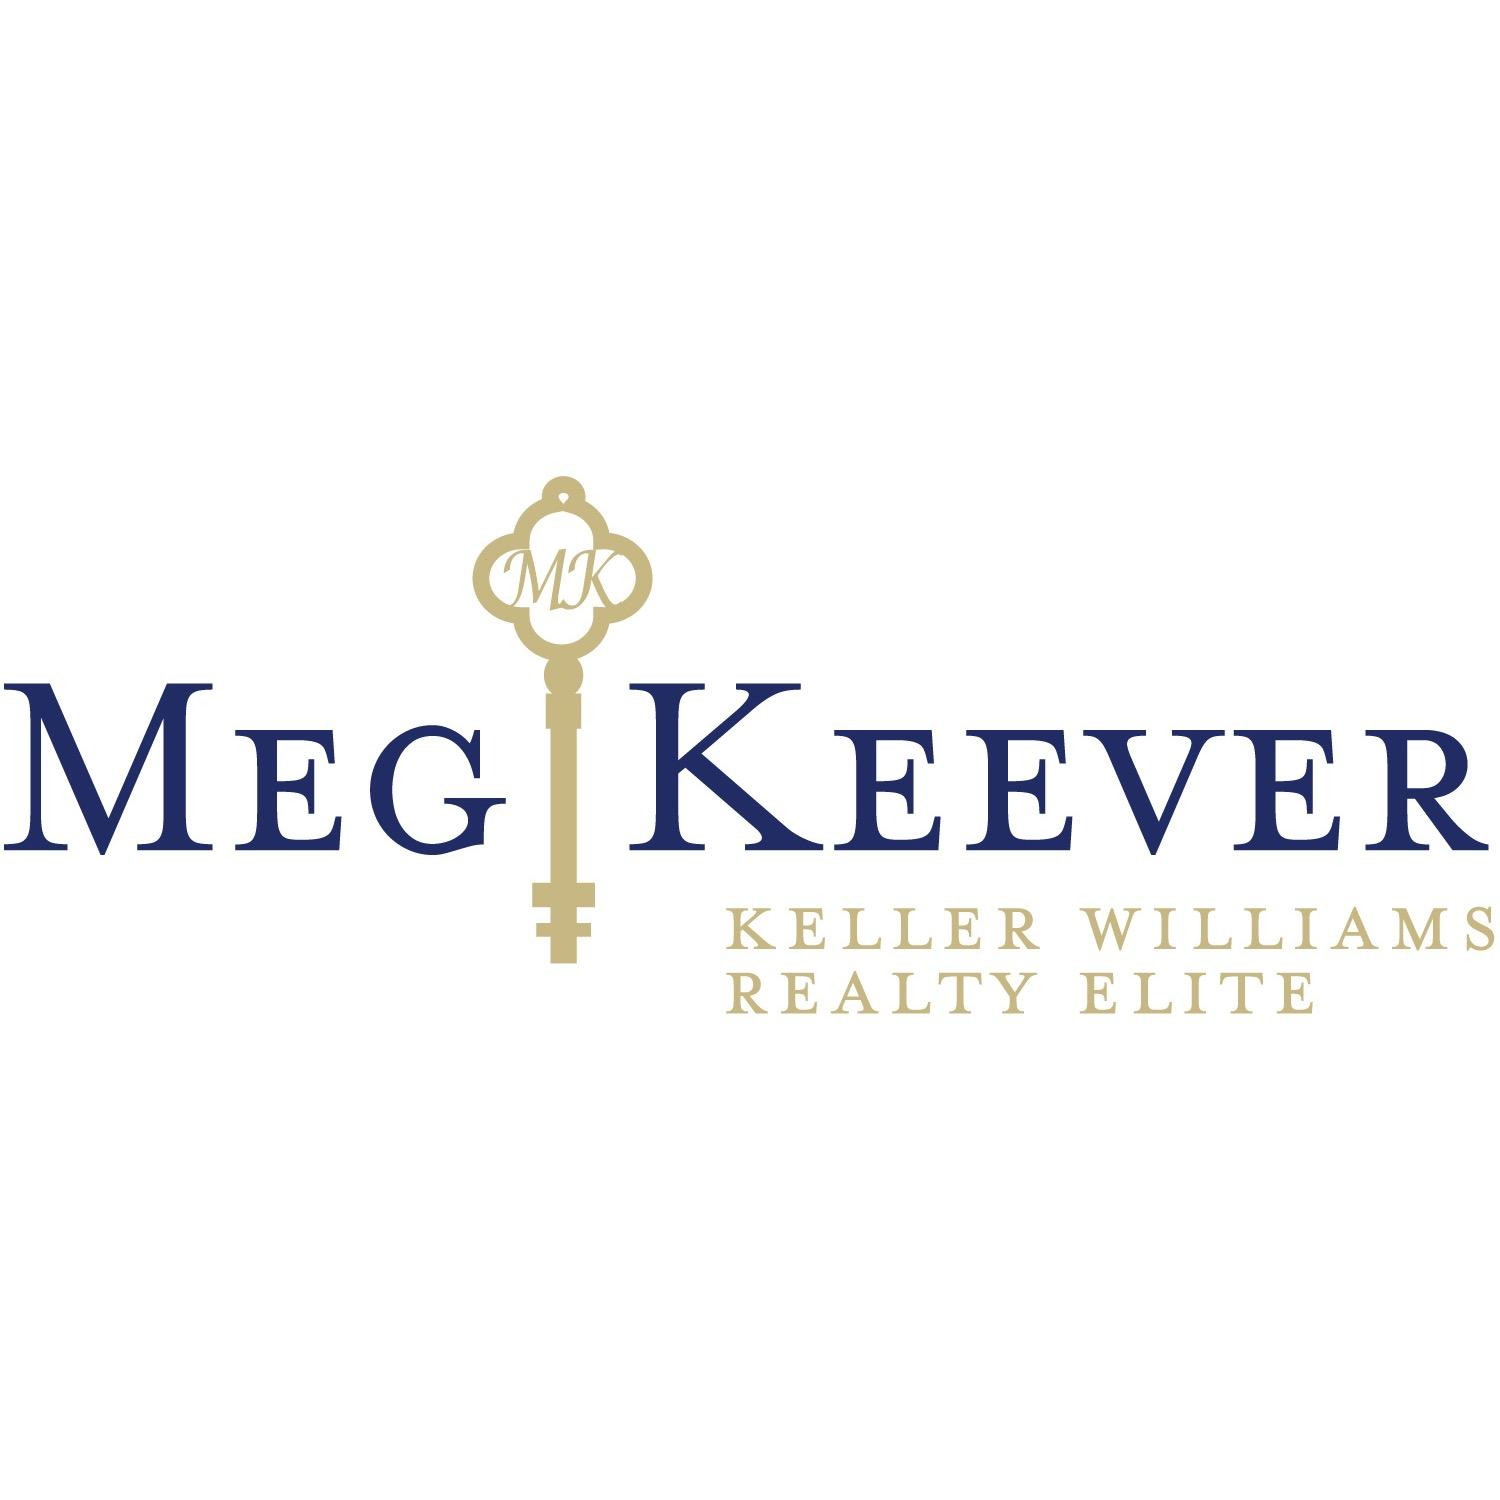 Meg Keever - Keller Williams Realty Elite - Winston Salem, NC 27103 - (336)926-0506 | ShowMeLocal.com